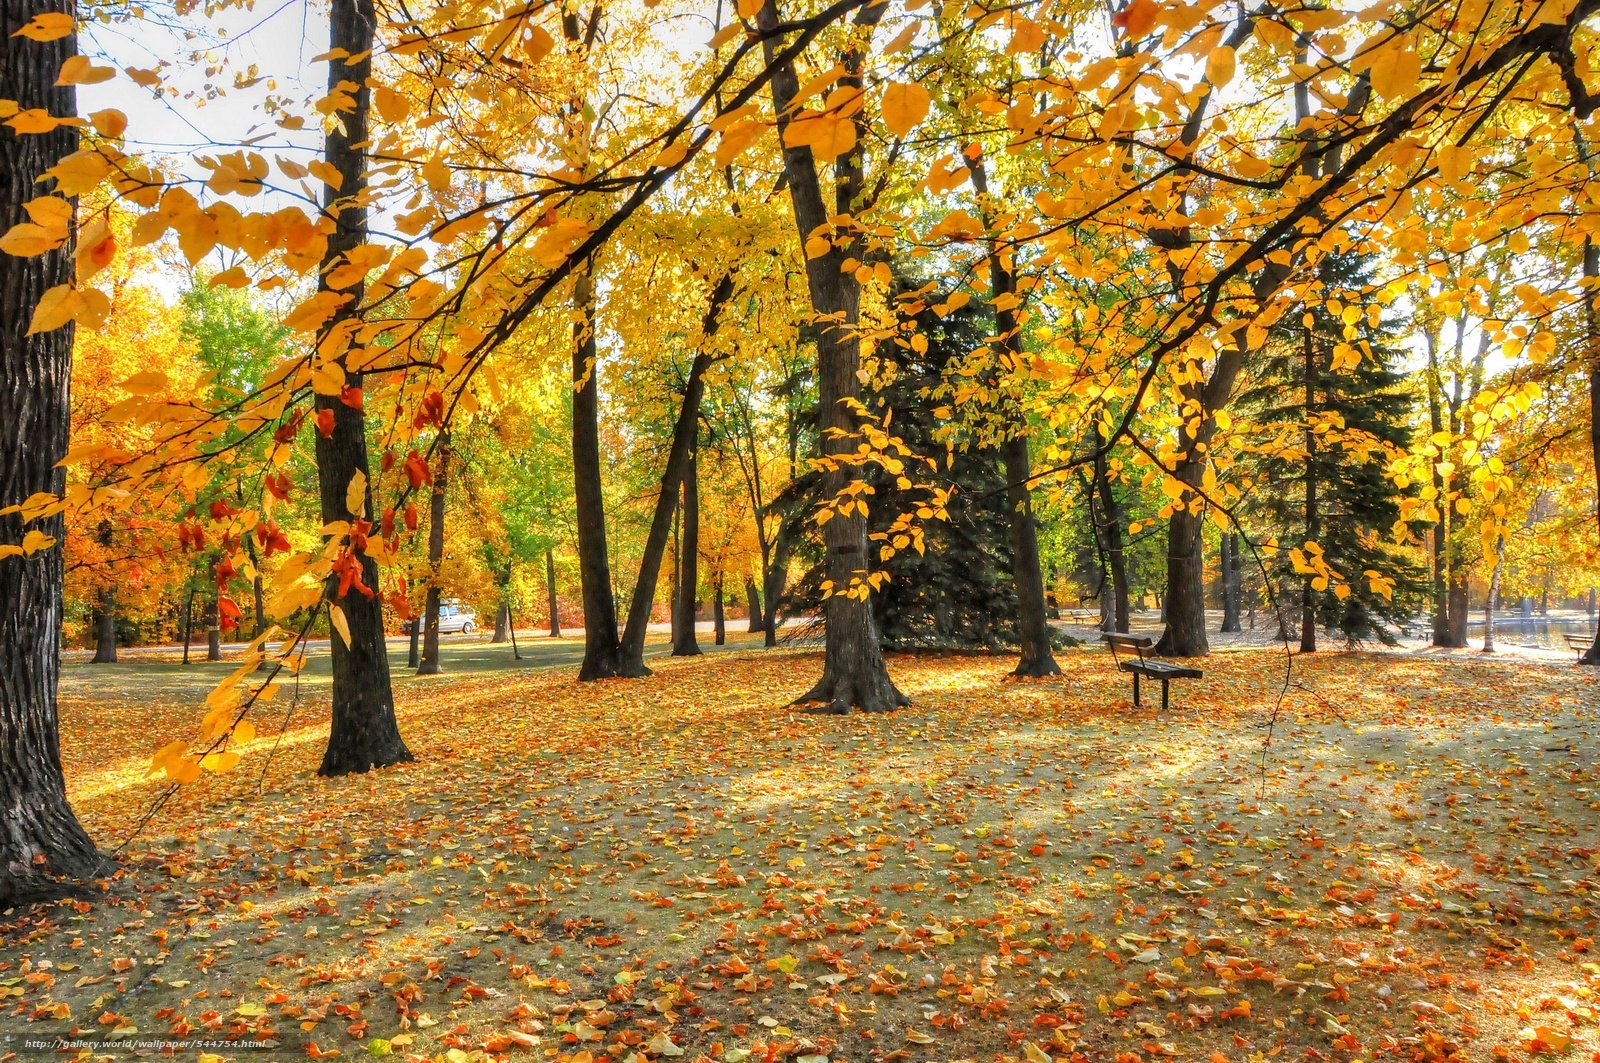 Download wallpaper autumn, park, trees, foliage free desktop